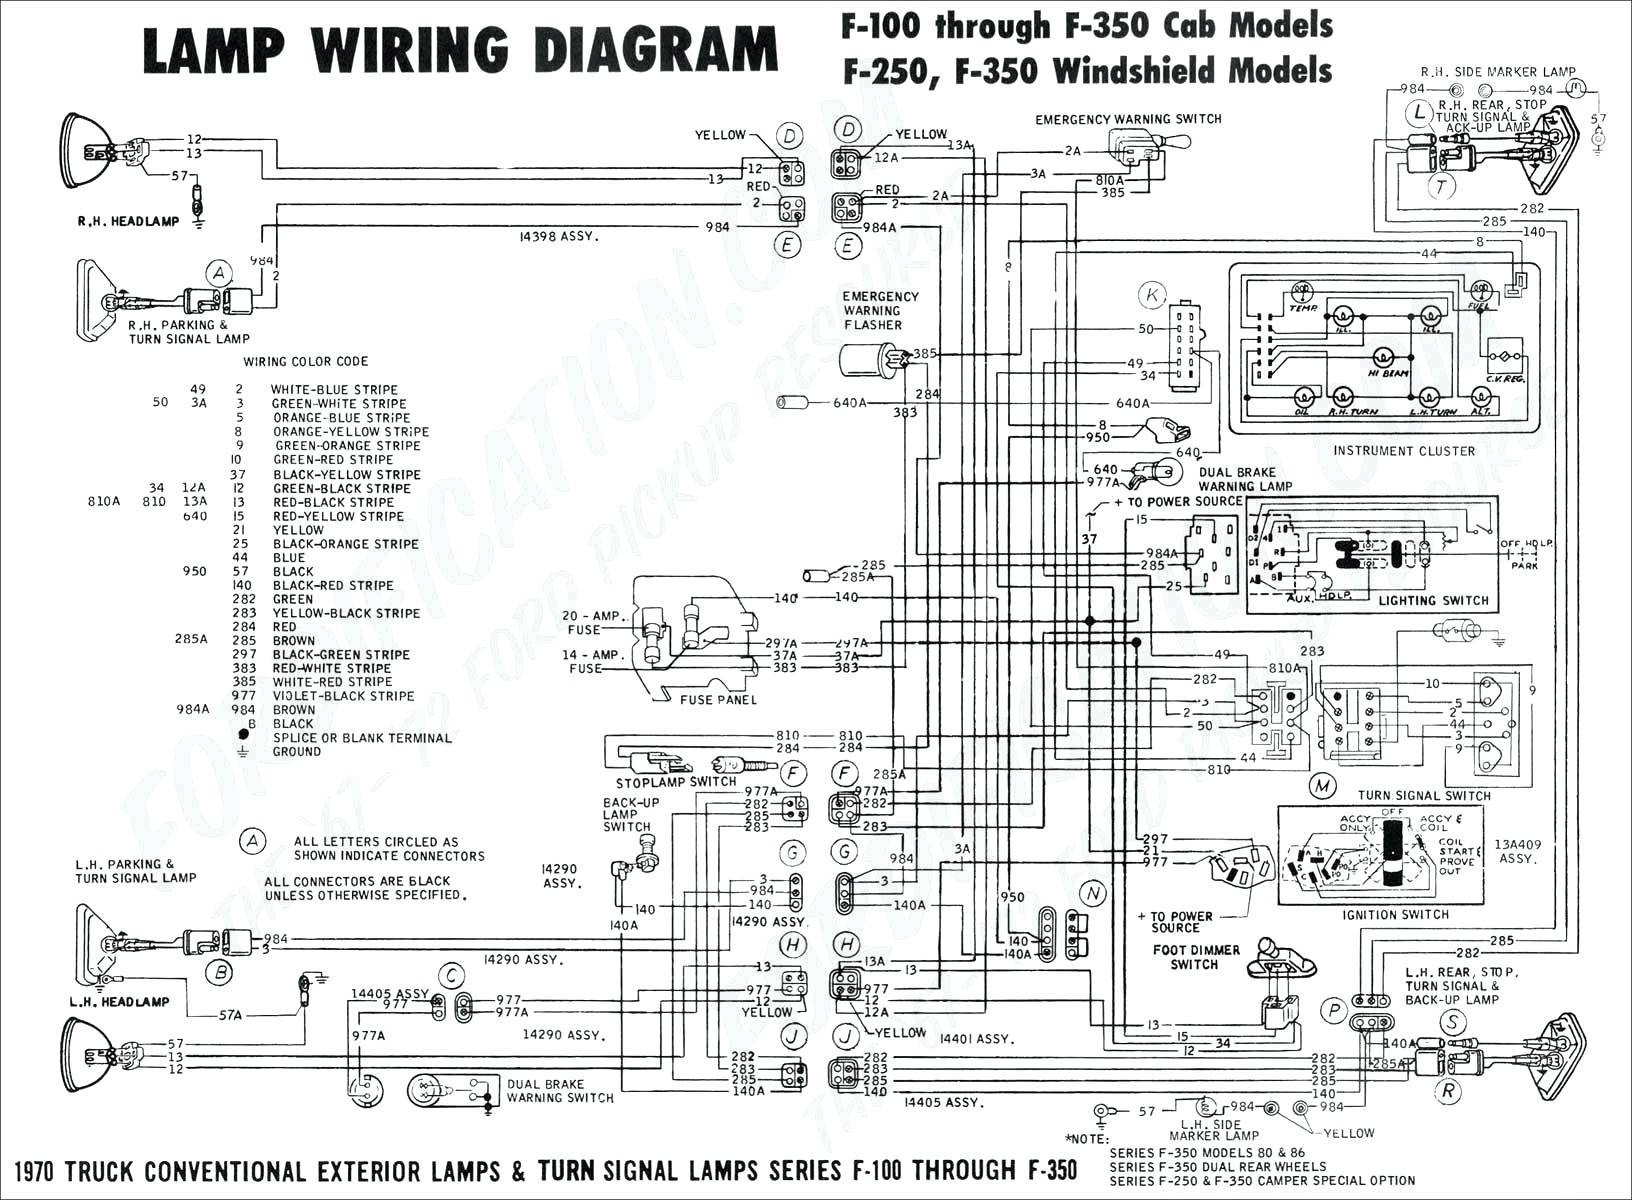 2000 Jeep Cherokee Sport Engine Diagram 1995 Jeep Grand Cherokee Wiring Diagram Shahsramblings Of 2000 Jeep Cherokee Sport Engine Diagram